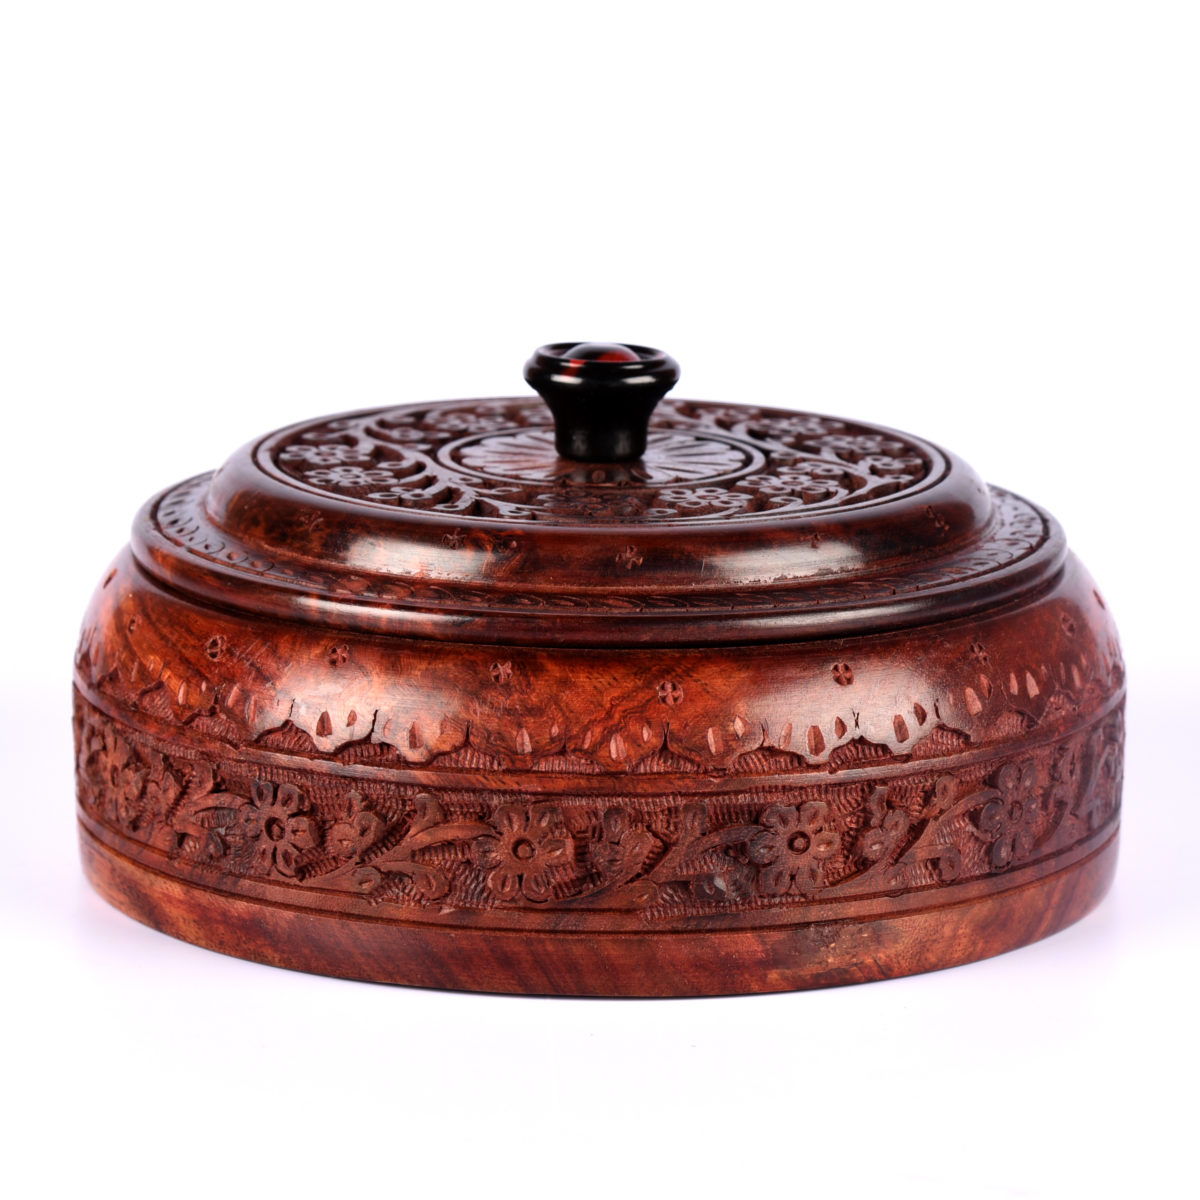 Wooden Roti box-9.5 inches